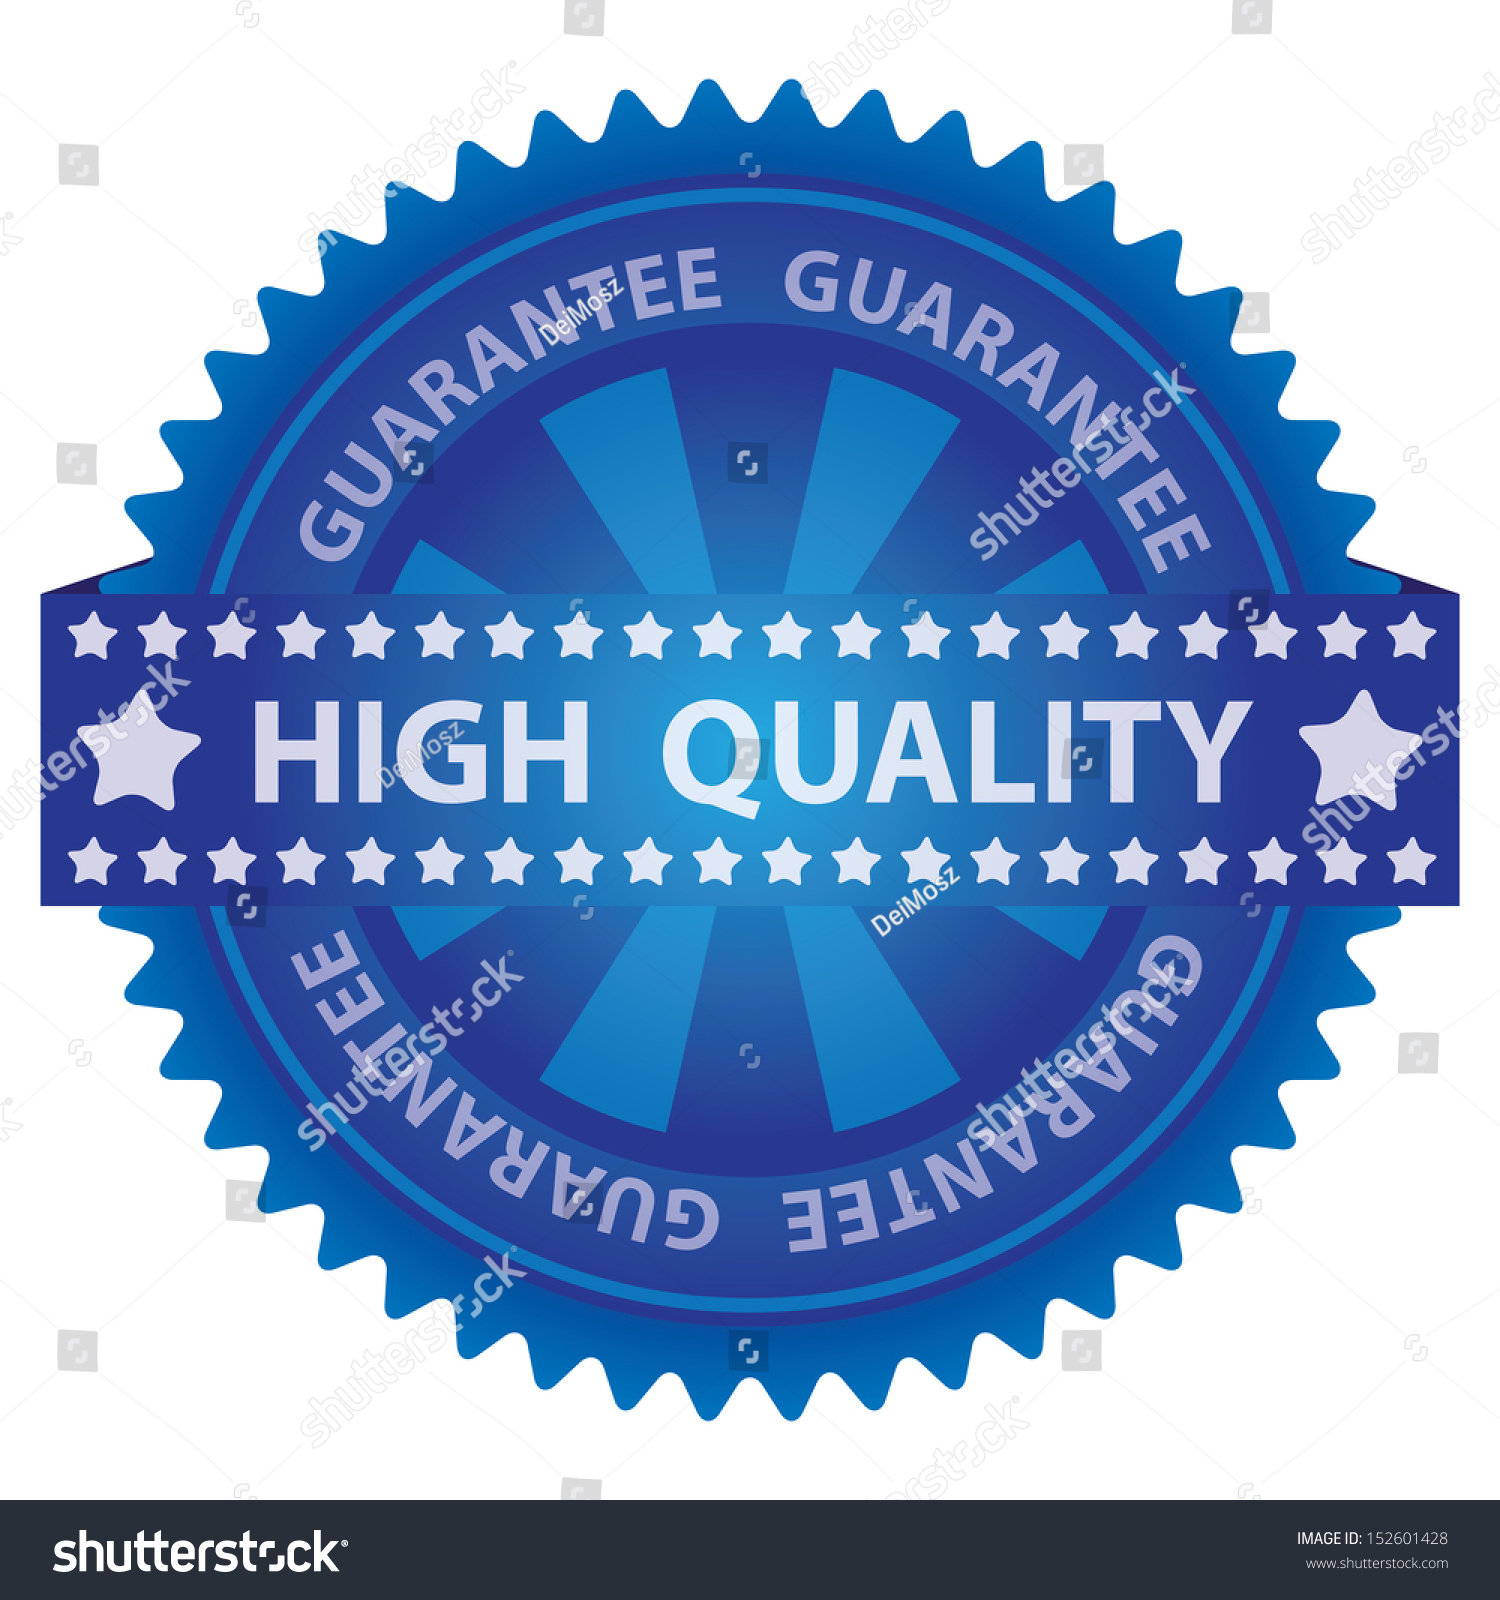 Quality Management Systems, Quality Assurance and Quality Control ...